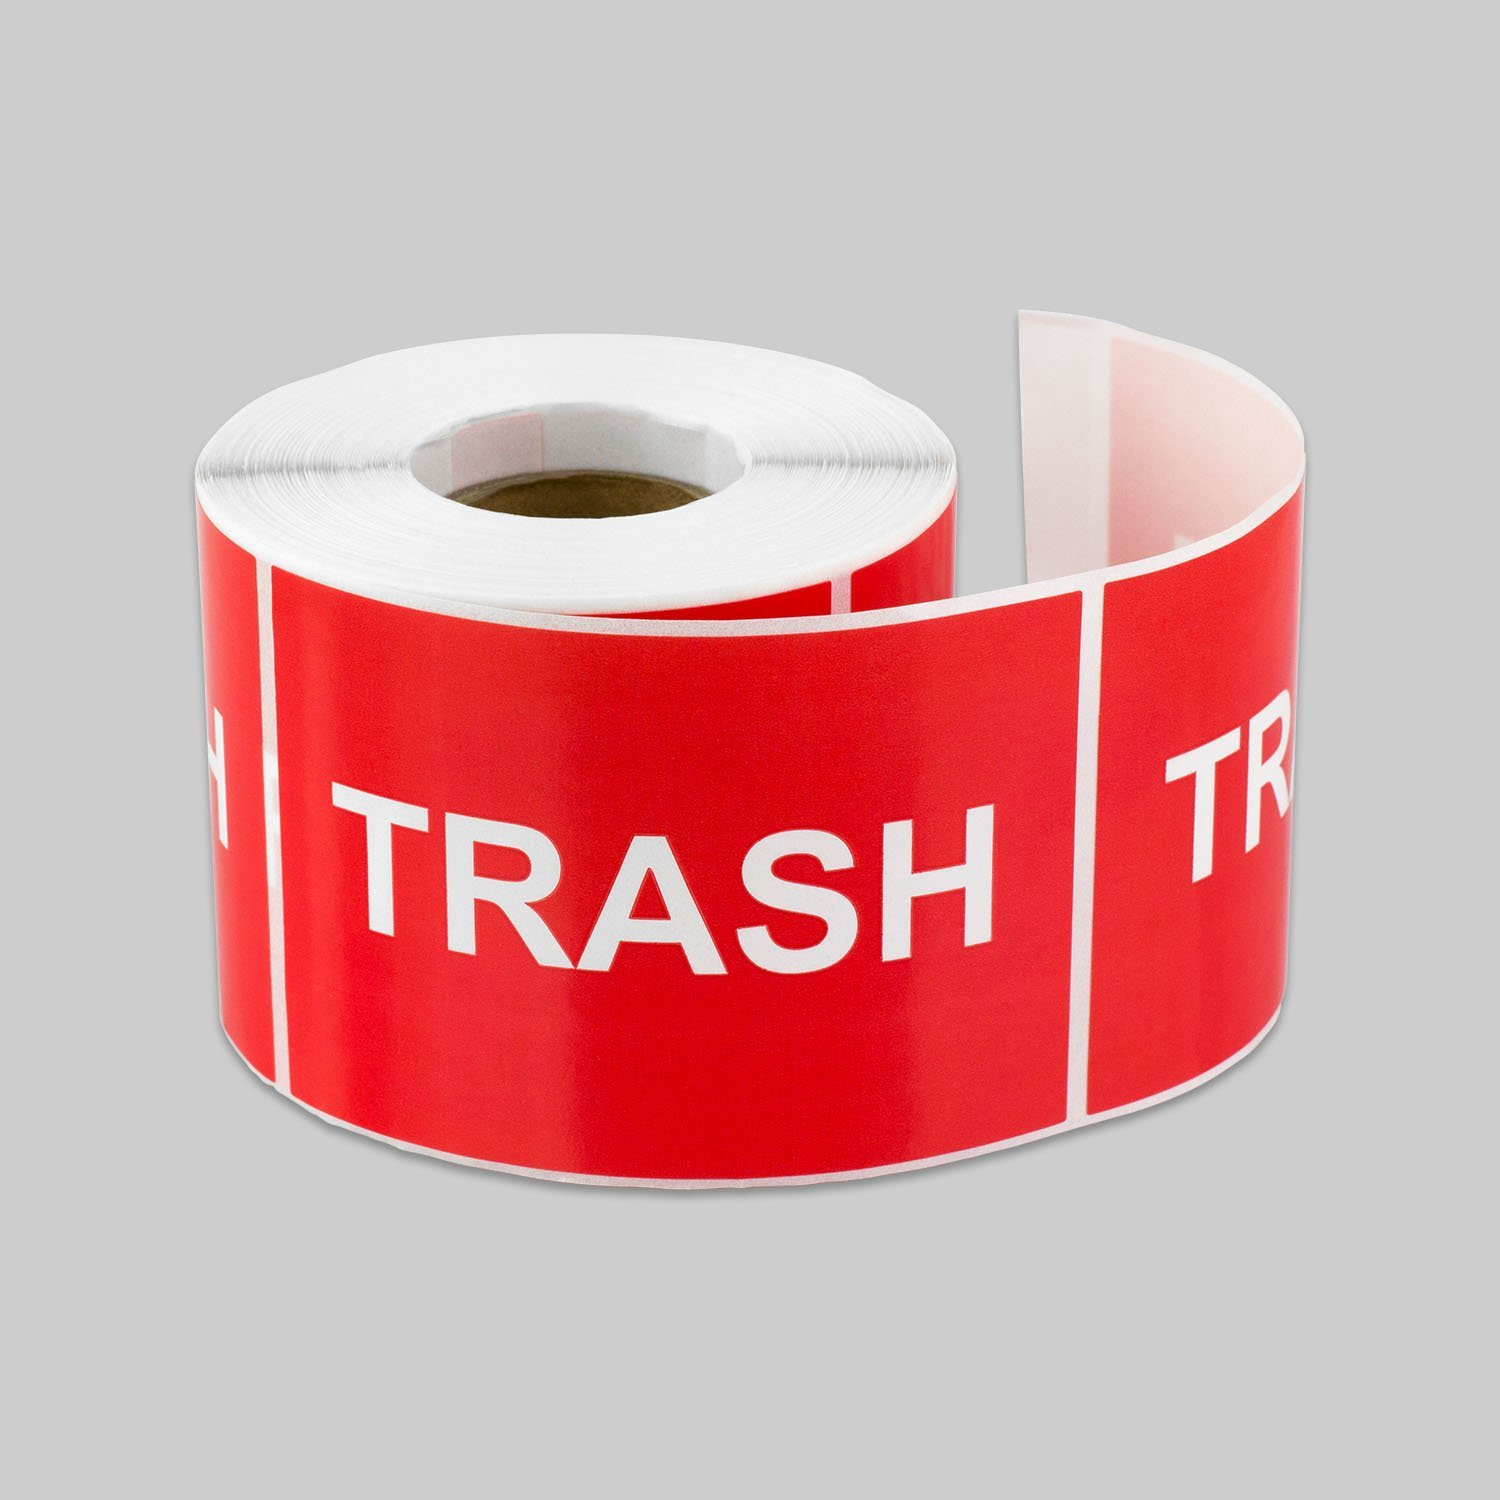 "Tuco Deals 3"" x 2"" Inch Large Red Background / White Text Disposal and Trash Labels Square Self Adhesive Stickers / Labels - ""Trash"""